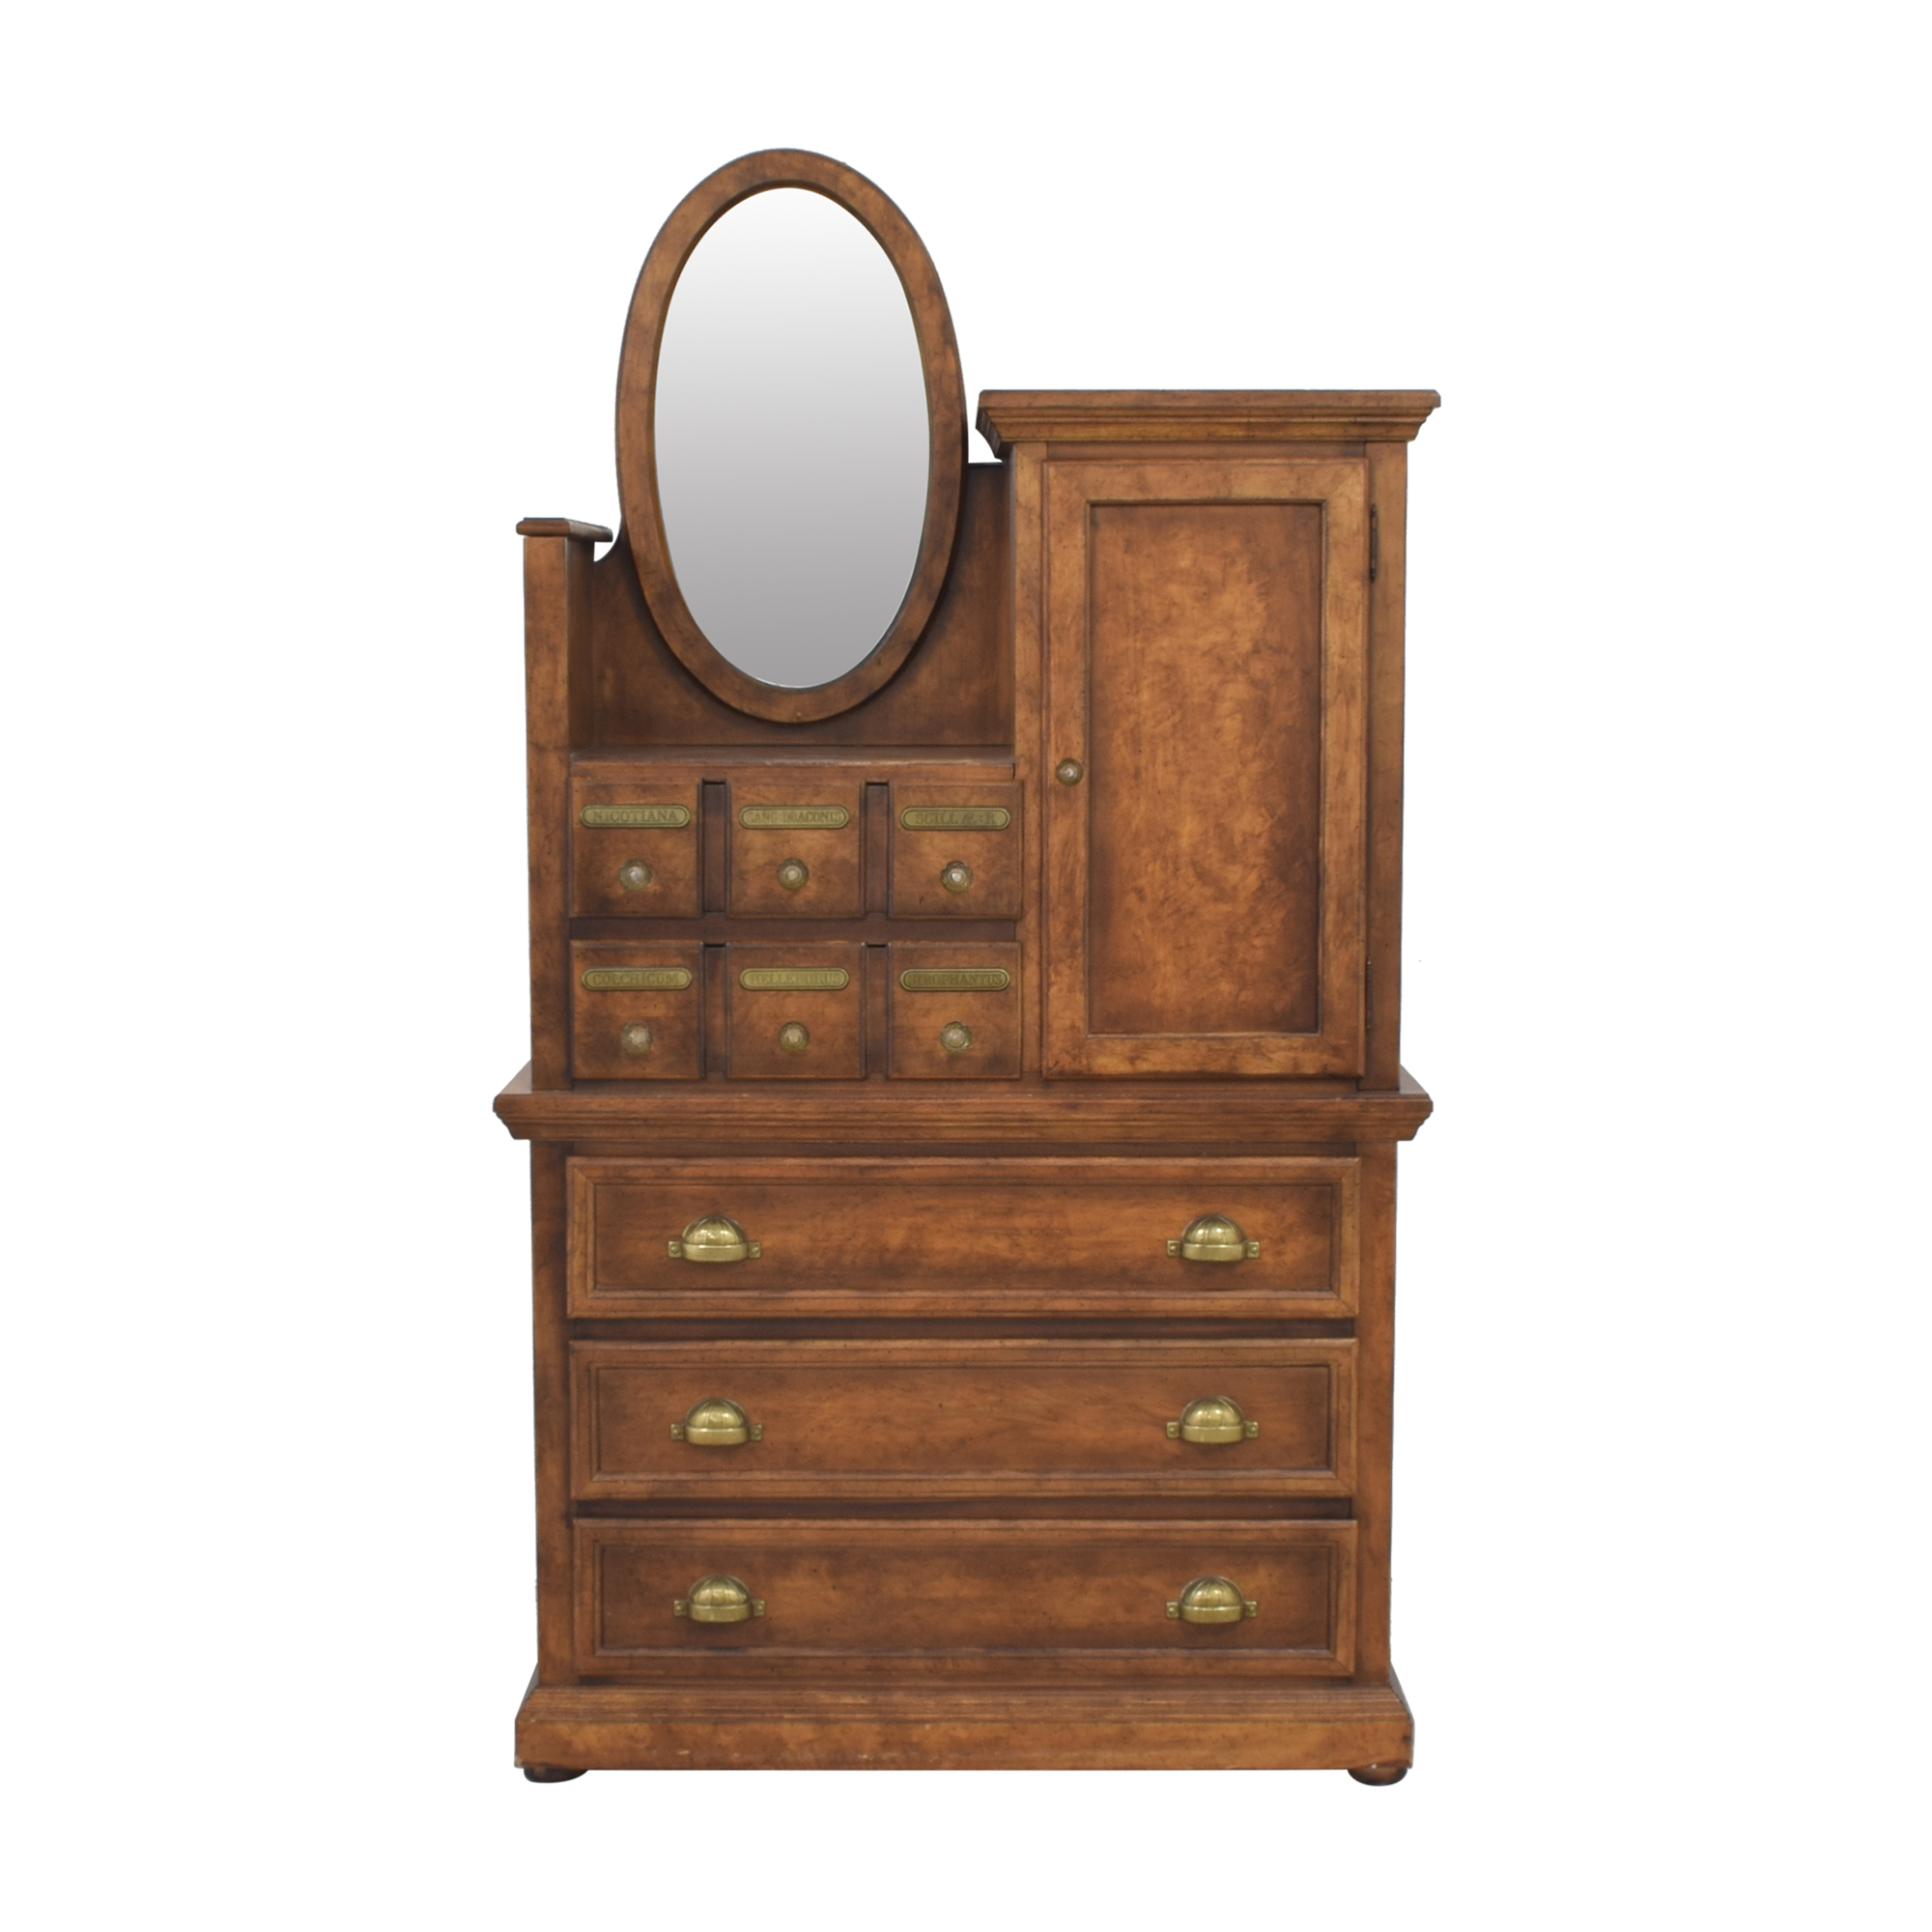 Antique Apothecary Wardrobe with Mirror / Dressers